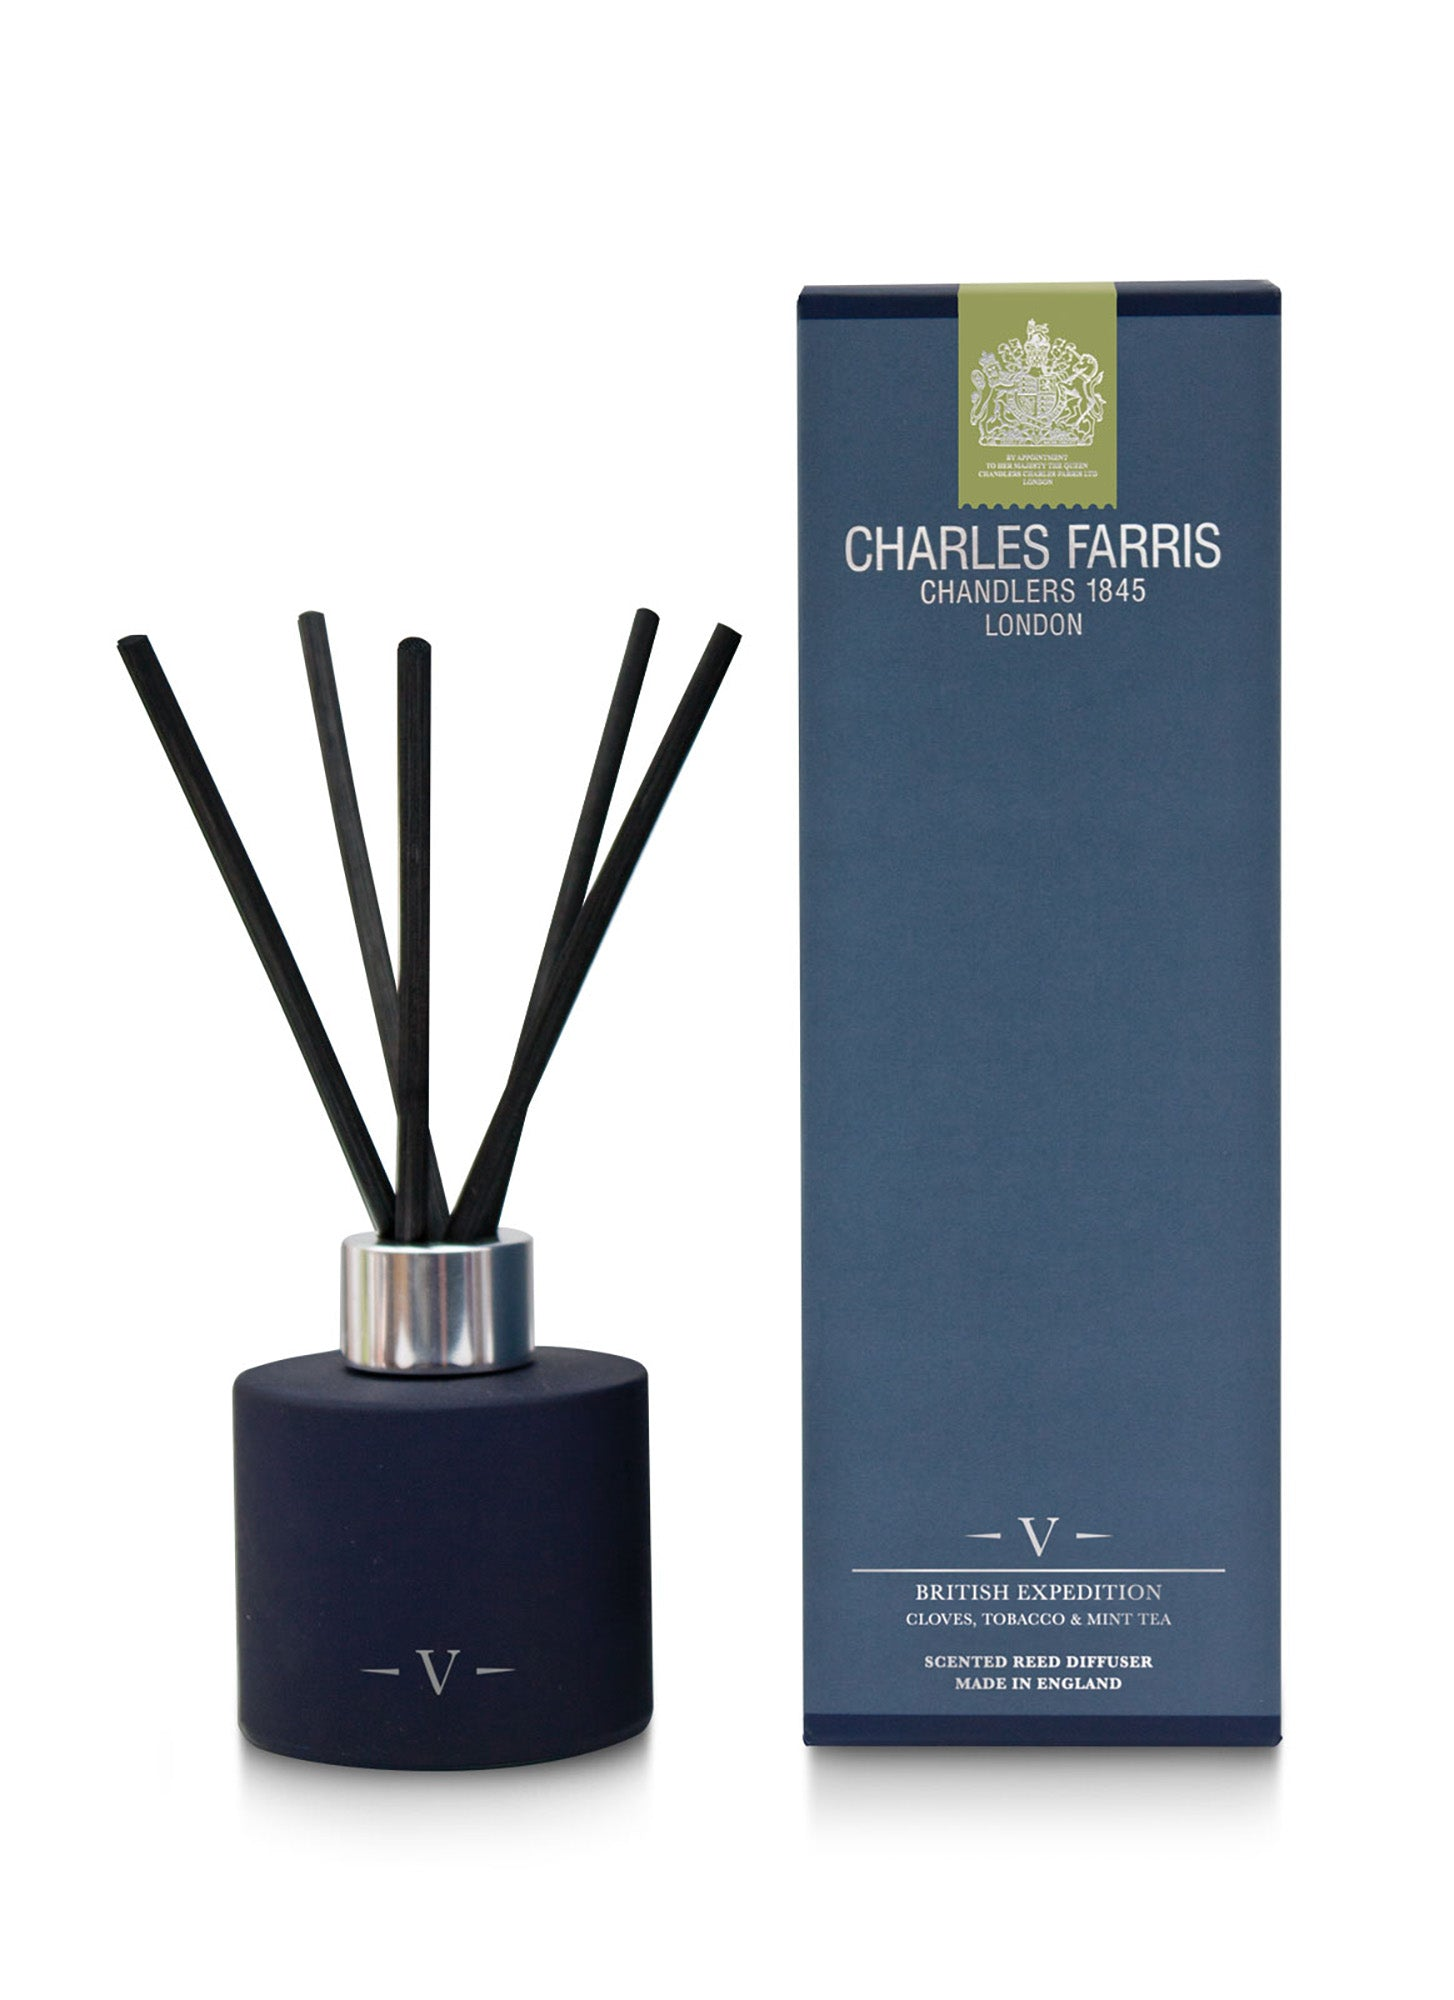 A reed diffuser with a dark blue jar.